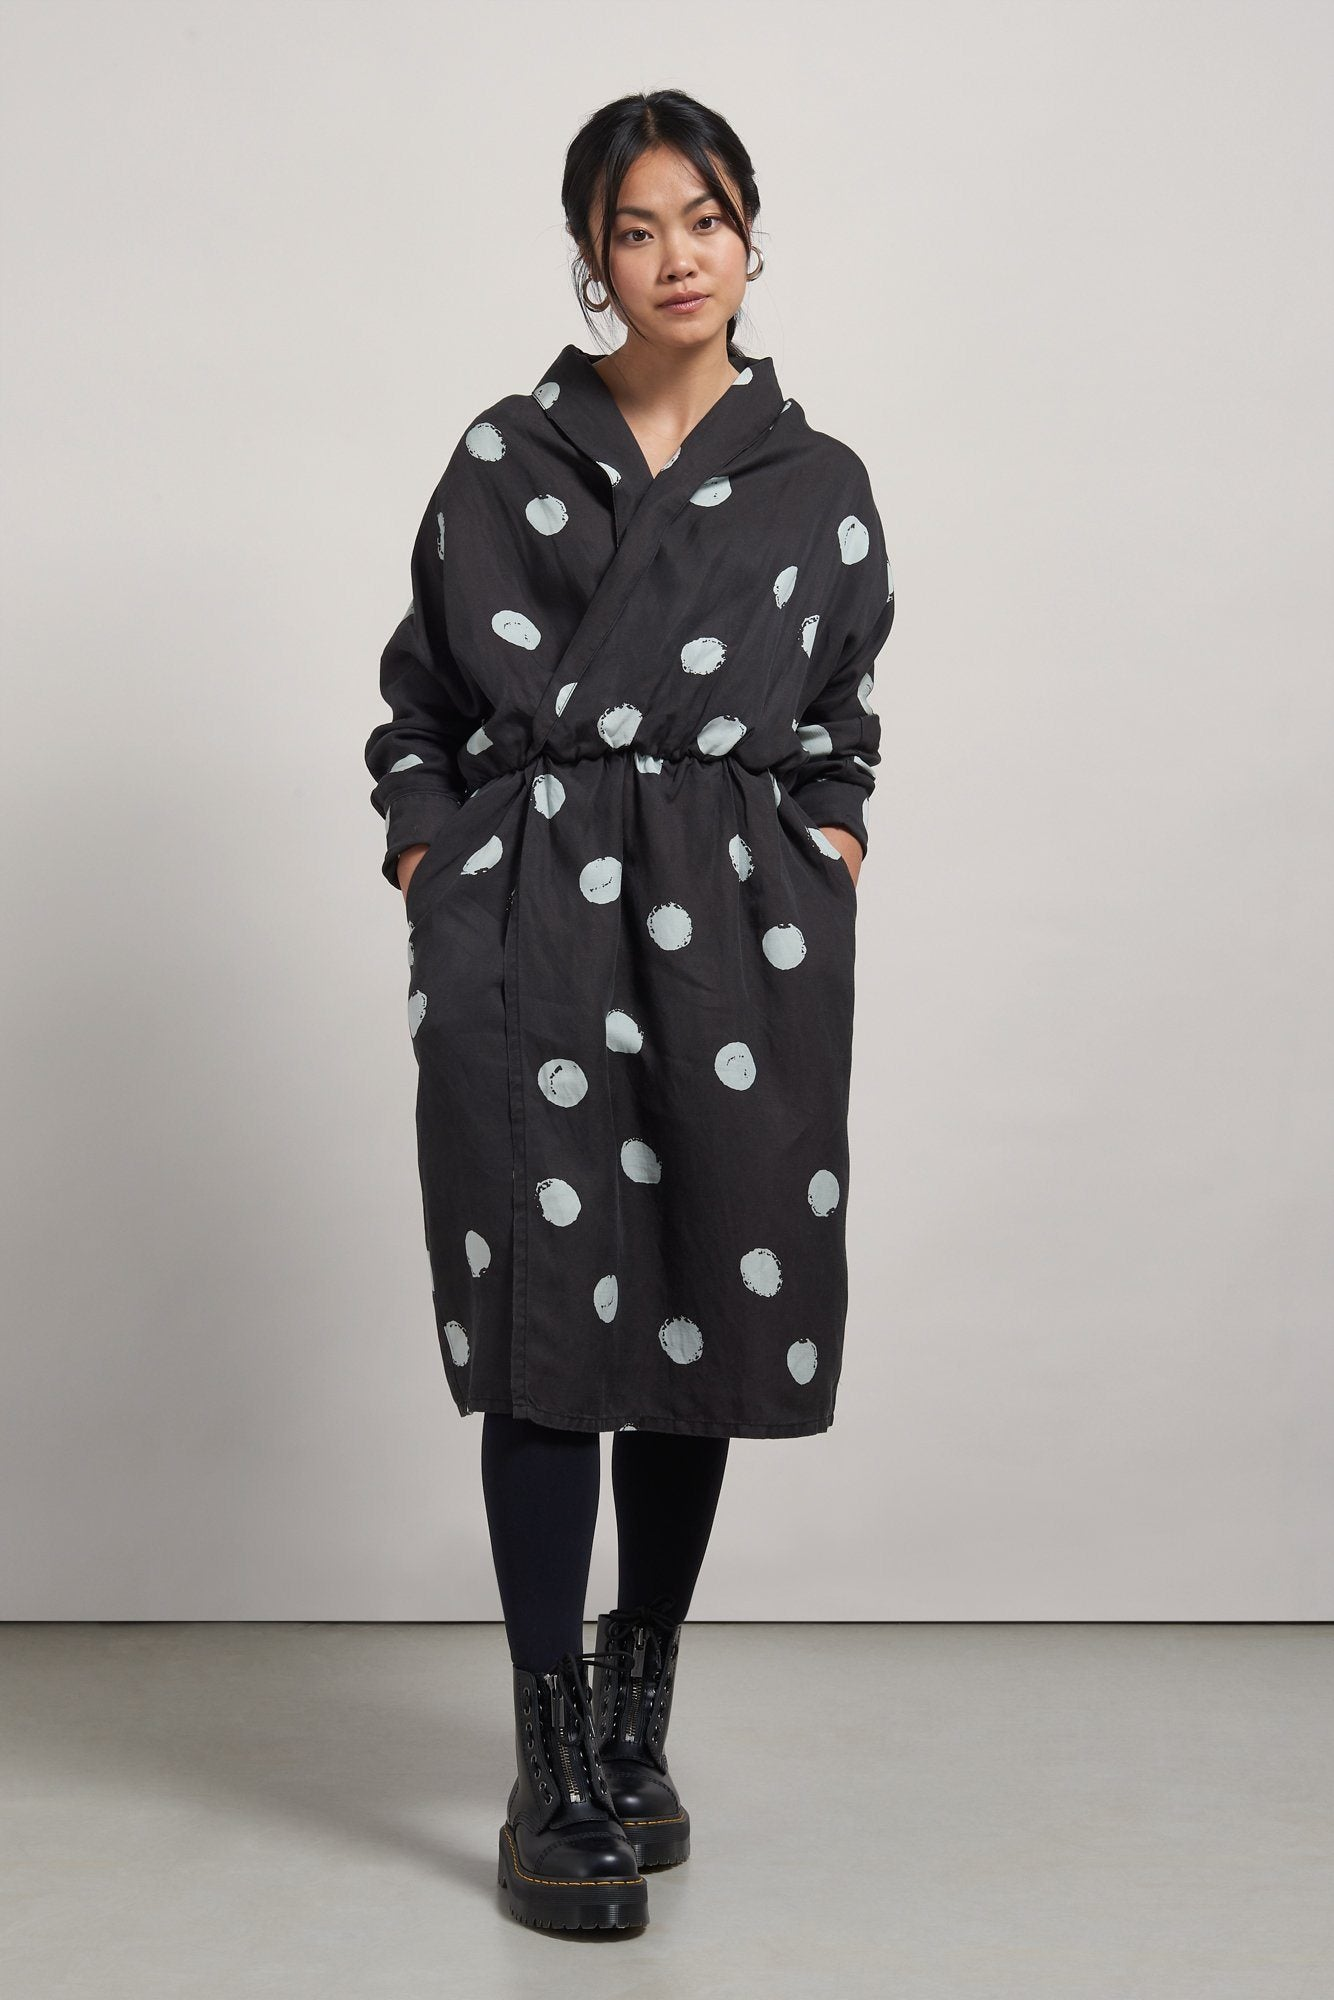 Dress - KUSAMA DOT Tencel Linen Wrap Dress